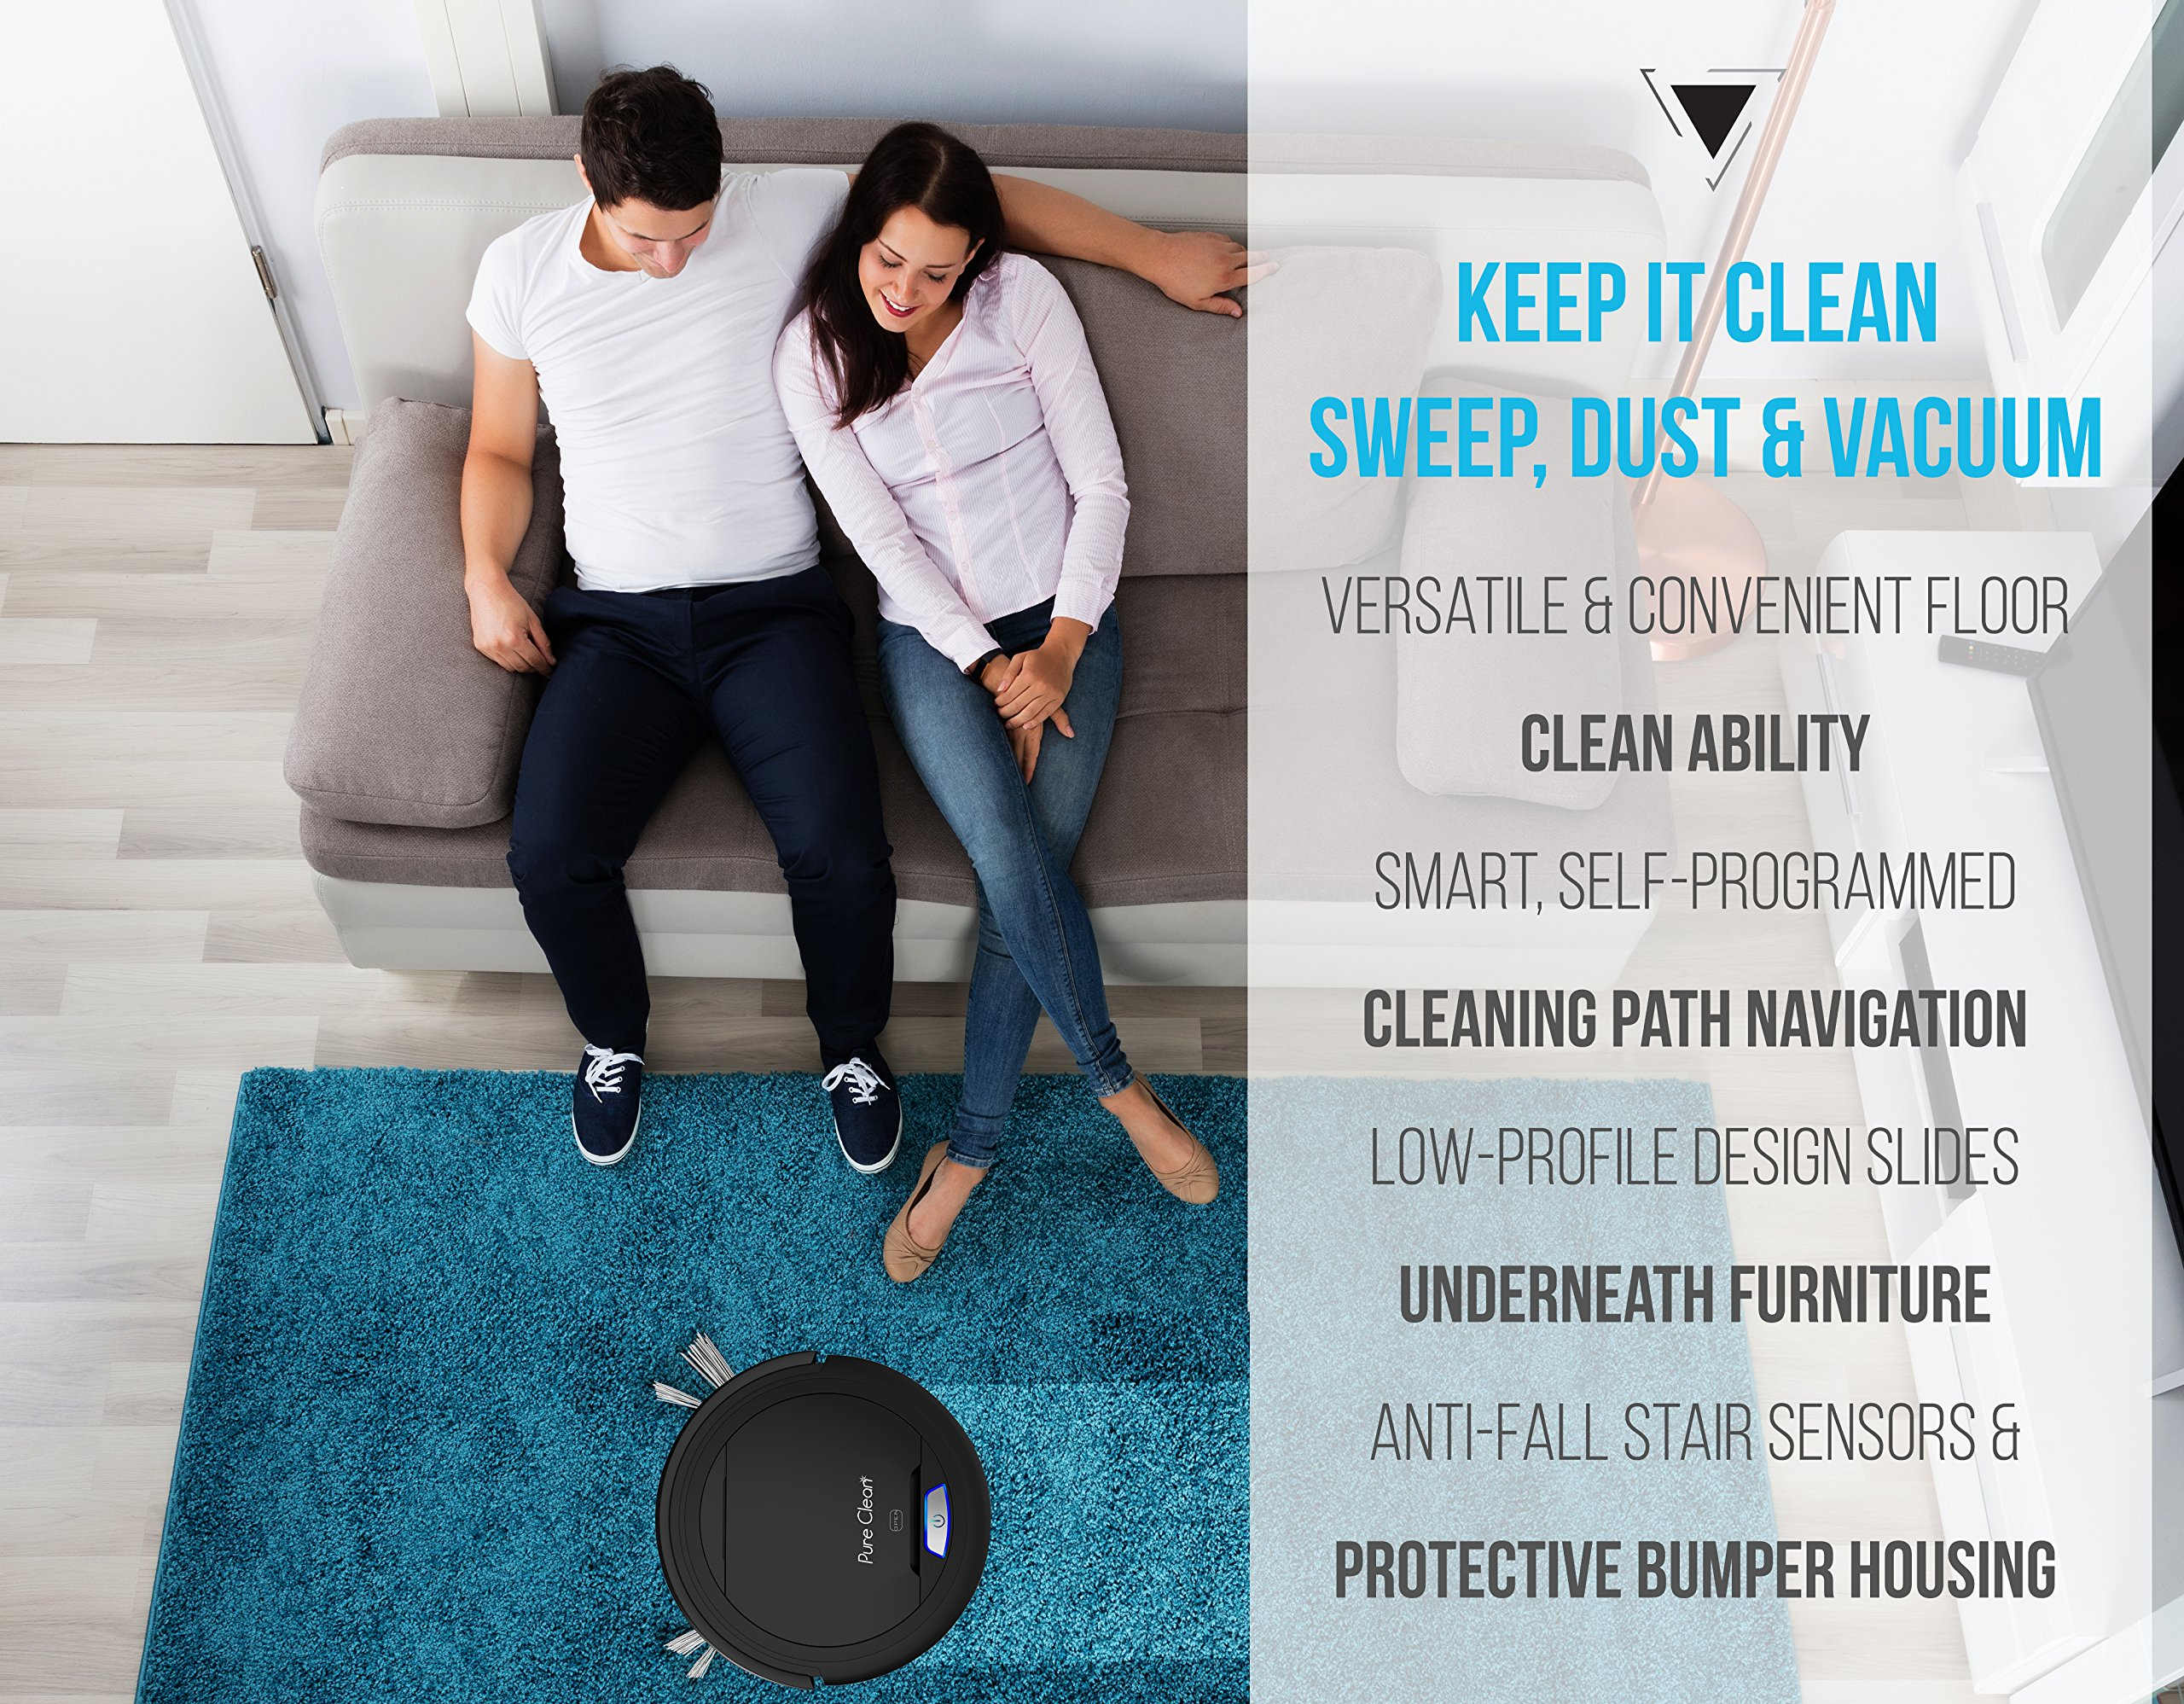 PureClean Automatic Robot Vacuum Cleaner - Robotic Auto Home Cleaning for Clean Carpet Hardwood Floor - Bot Self Detects Stairs - HEPA Filter Pet Hair Allergies Friendly - PUCRC26B (Black)